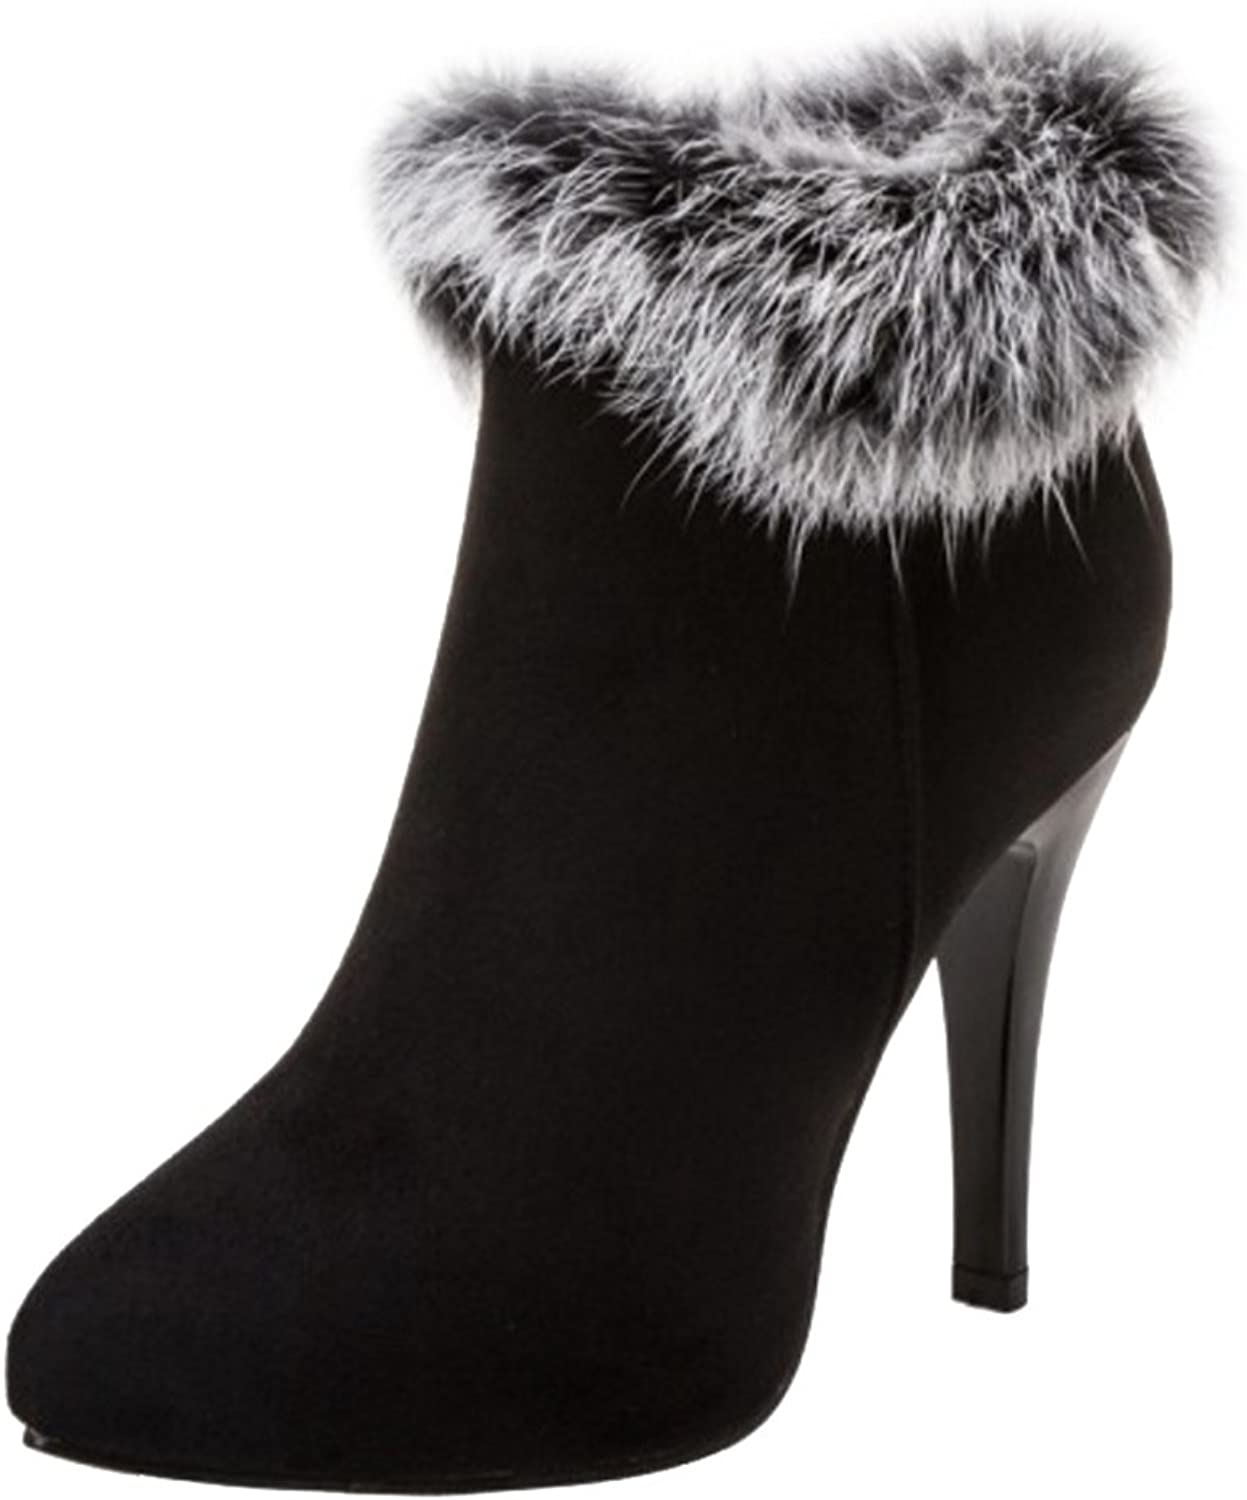 Smilice Fashion Anjke Boots with Kitten Heel and Sexy Fur Fashion Boots for All Parties Black